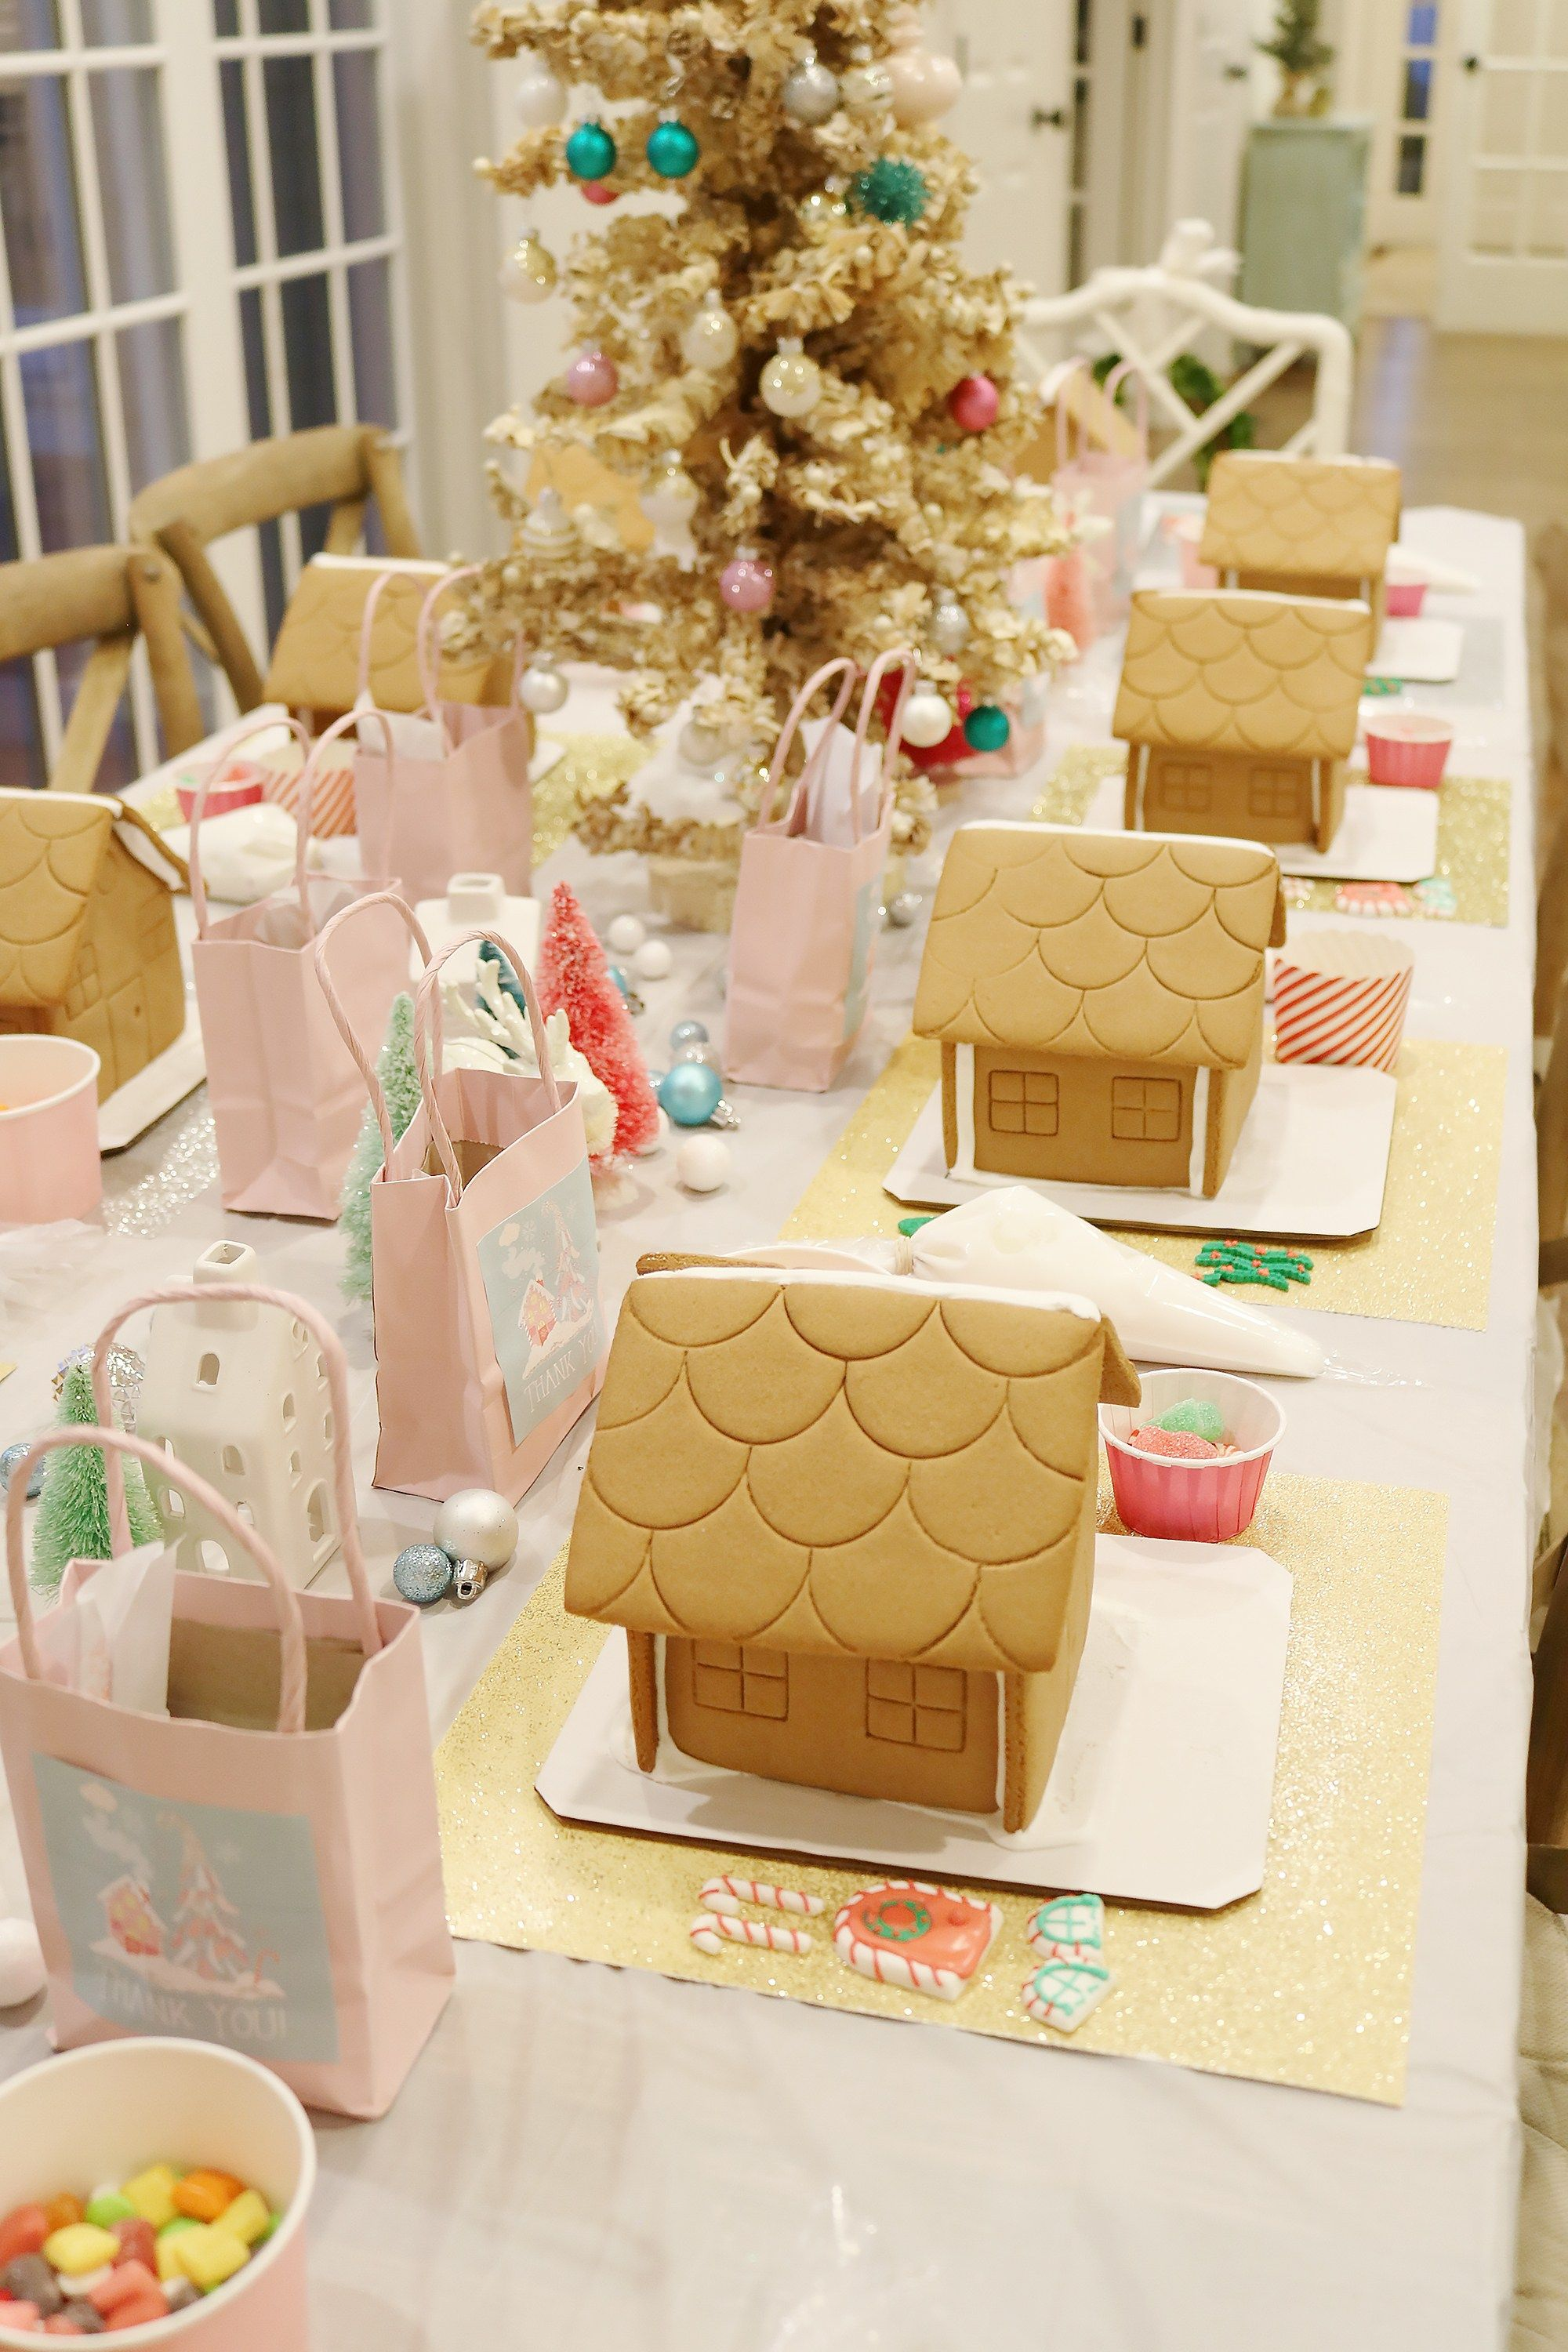 Christmas Birthday Party Ideas For Toddlers.Gingerbread House Decorating Party Free Printables